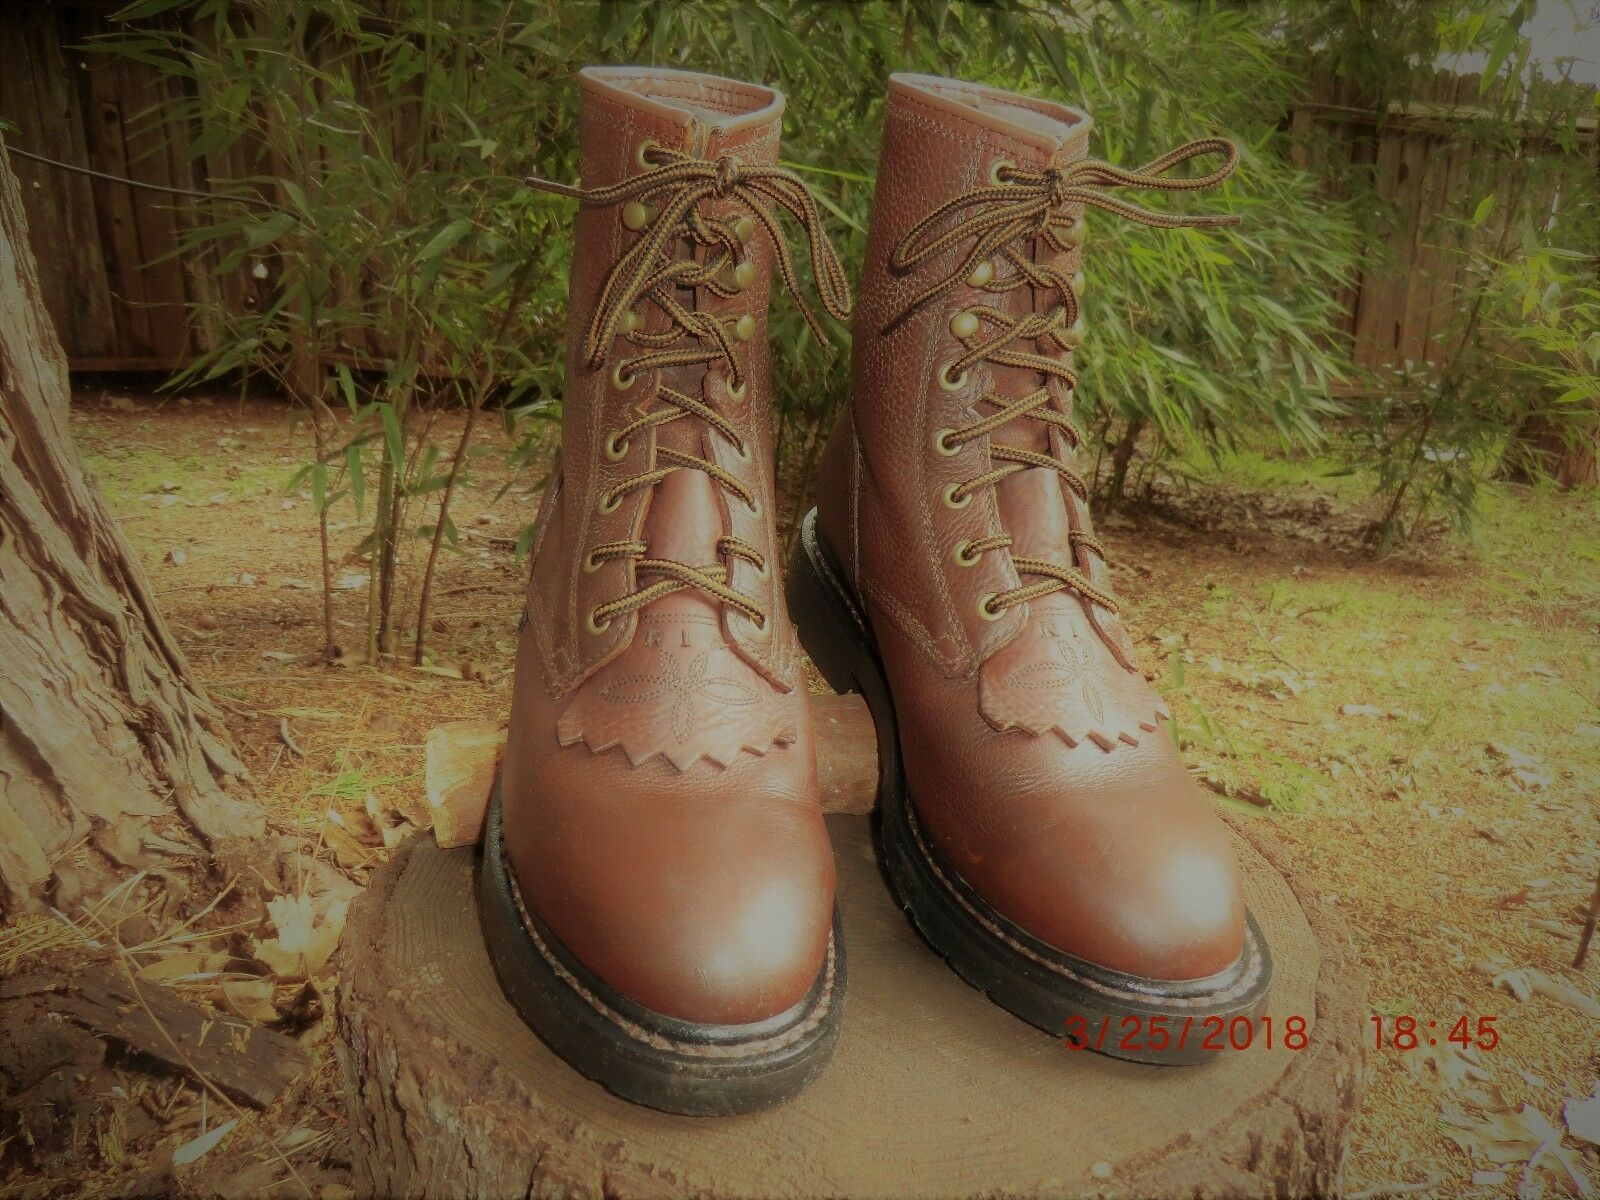 Ariat Work Stivali - Gently used Donna size 7.5 Ariat everyday wear / work boots.